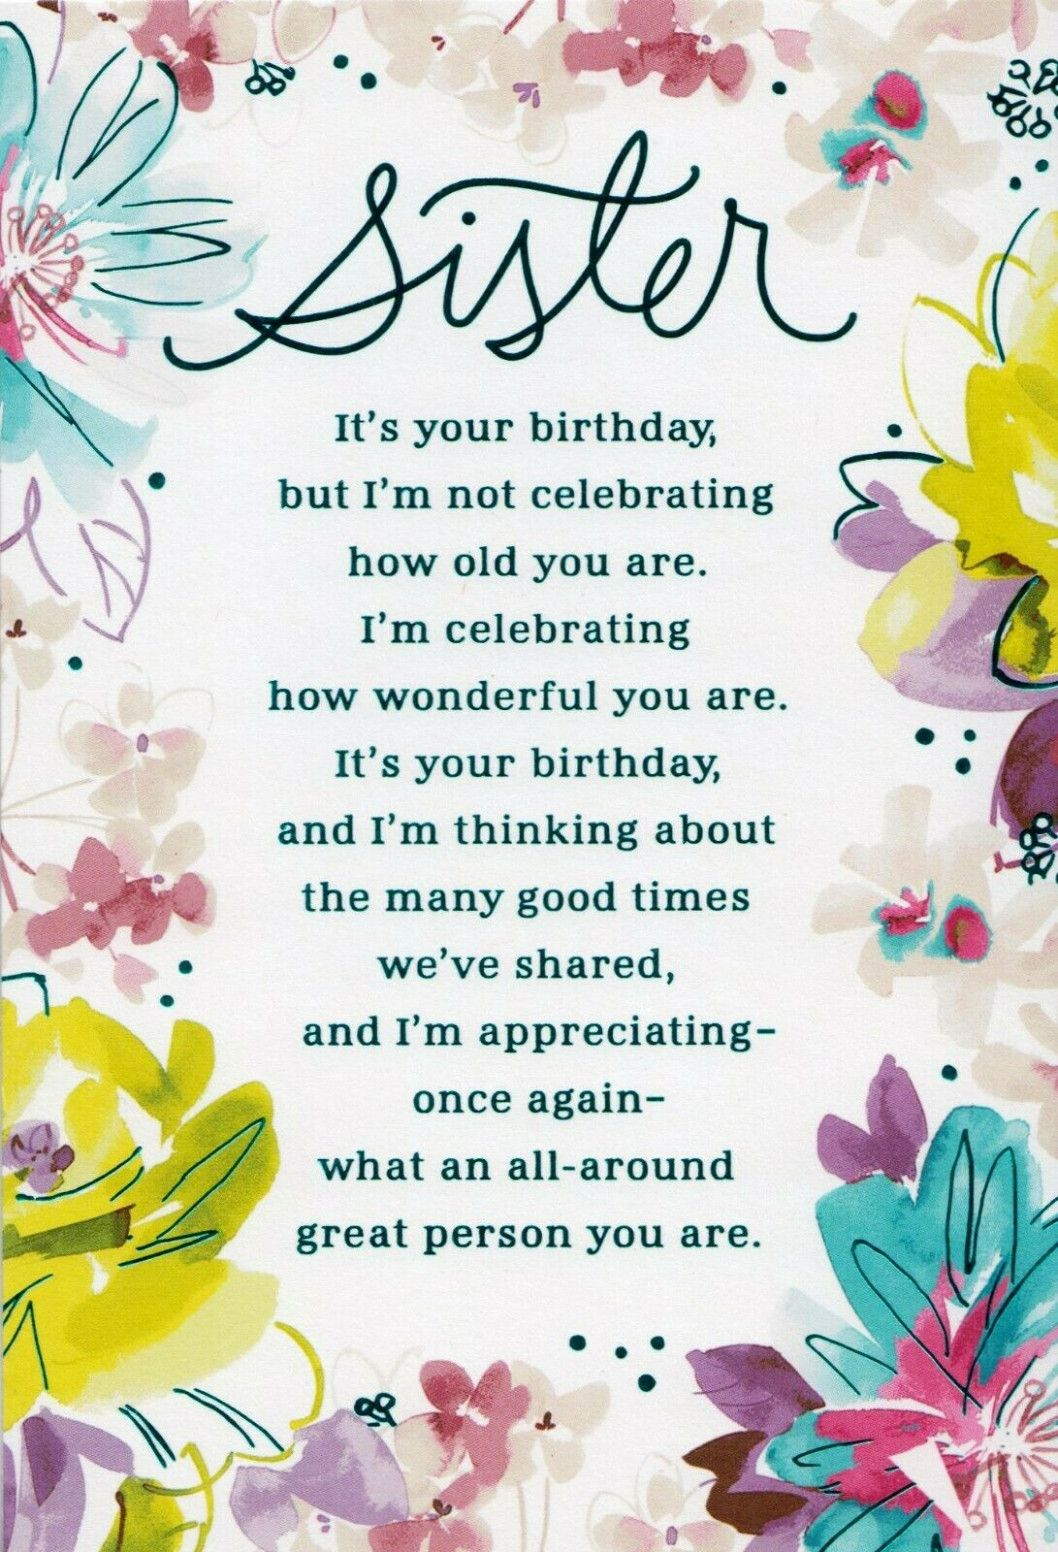 On This Your Sister S Birthday Wish Her All The Love And